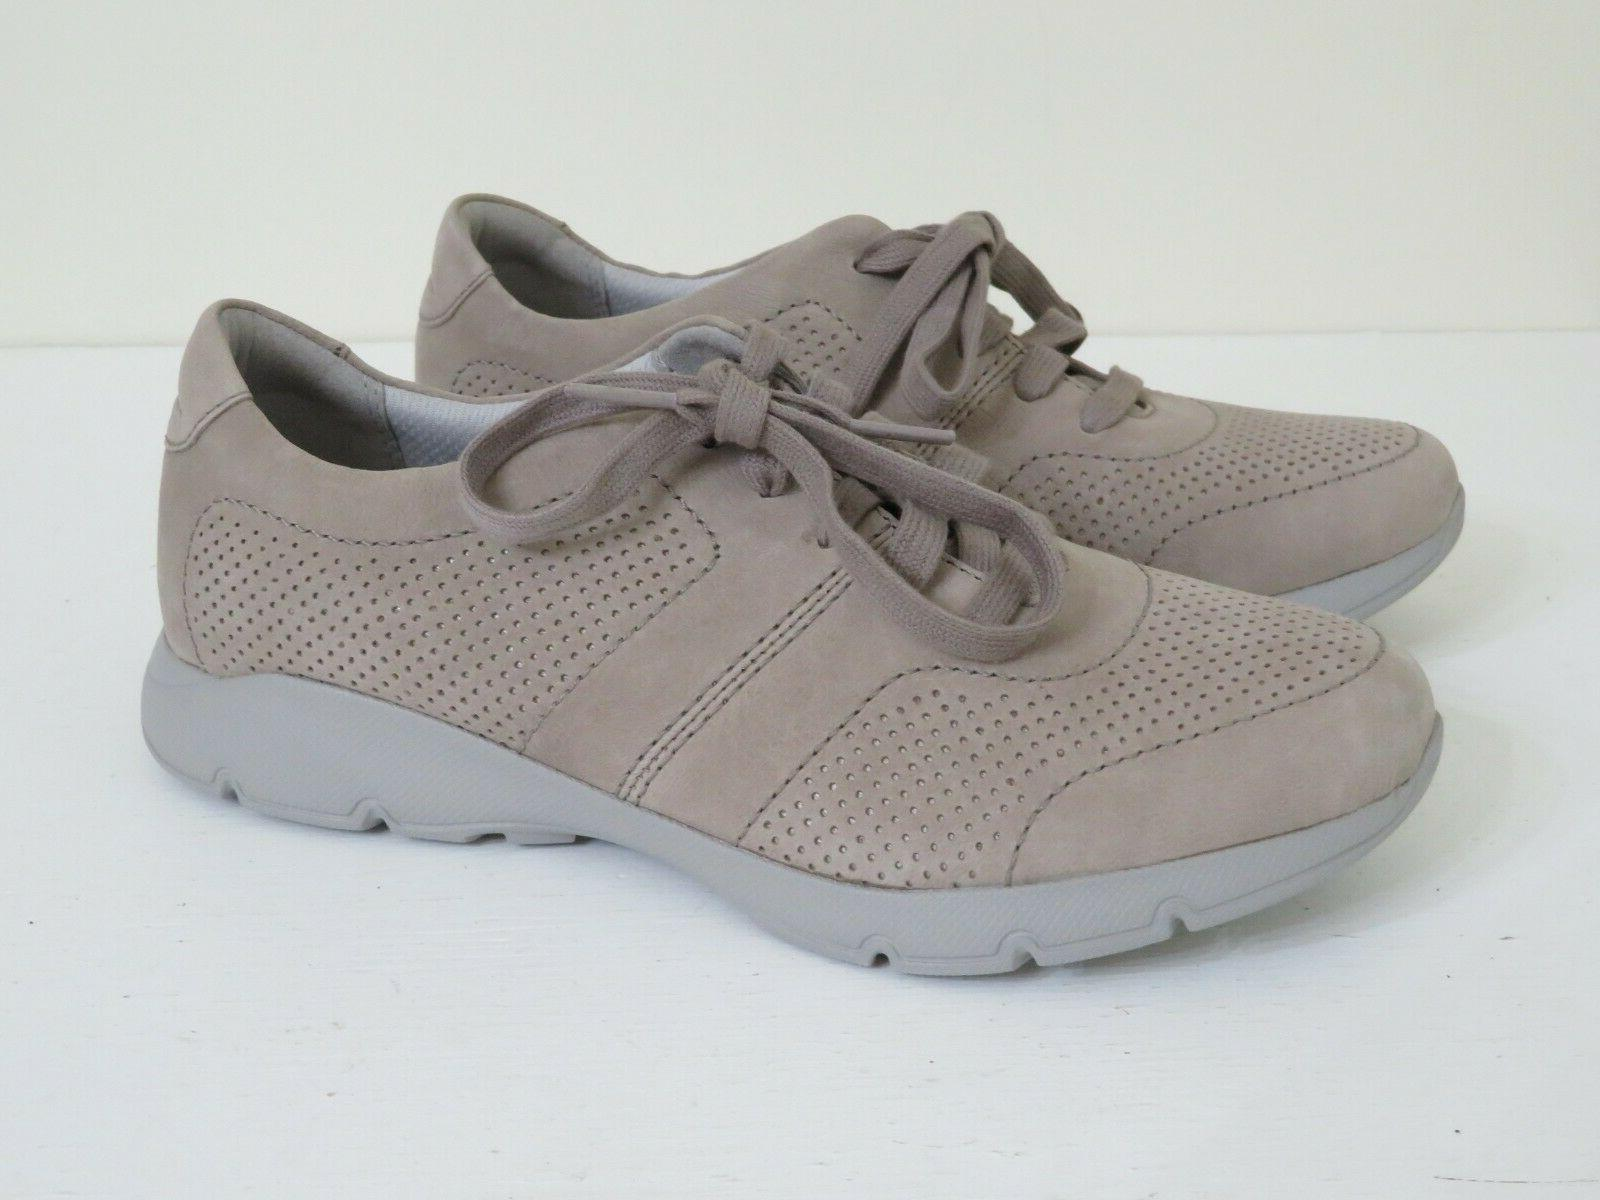 DANSKO TAUPE UP SHOES ALISSA SIZE 6.5-7